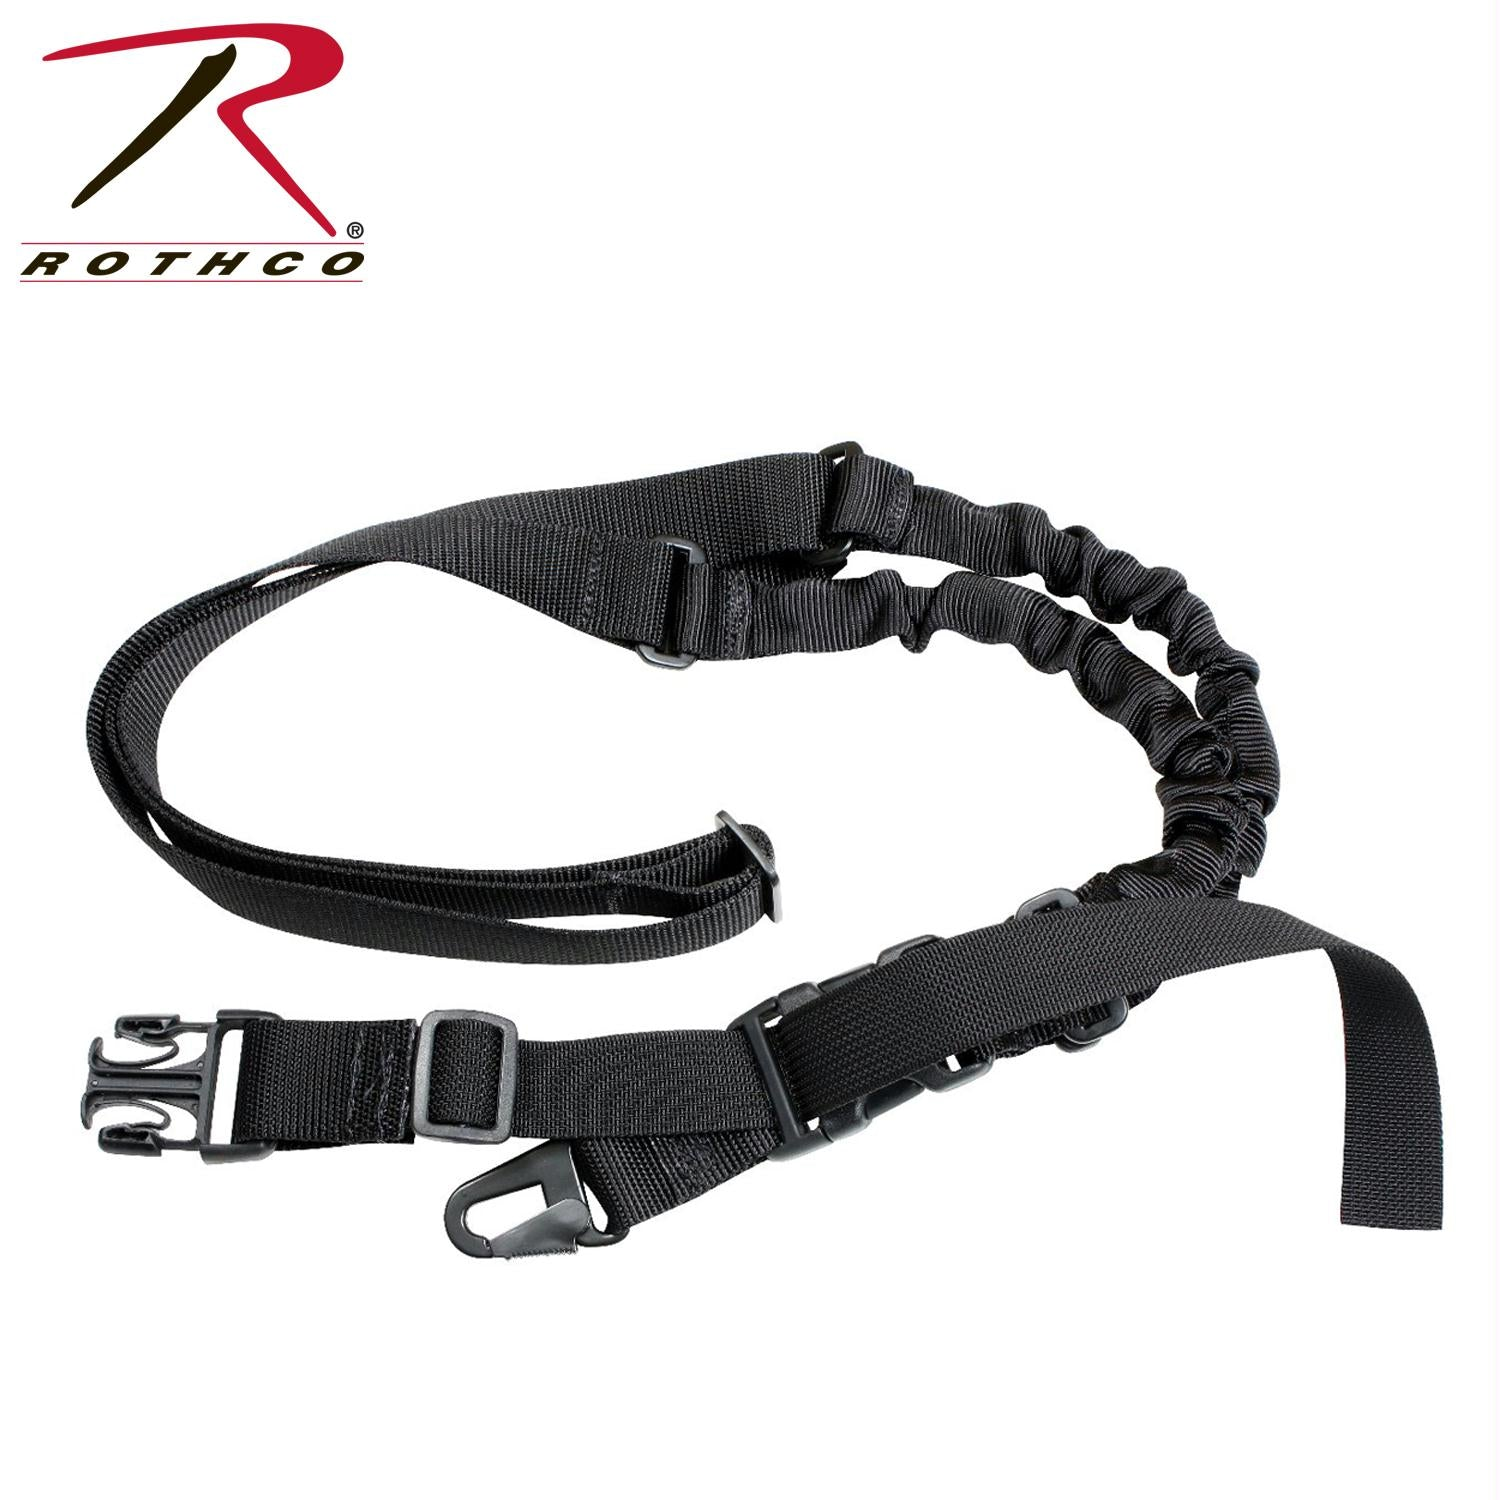 Rothco Tactical Single Point Sling - Black